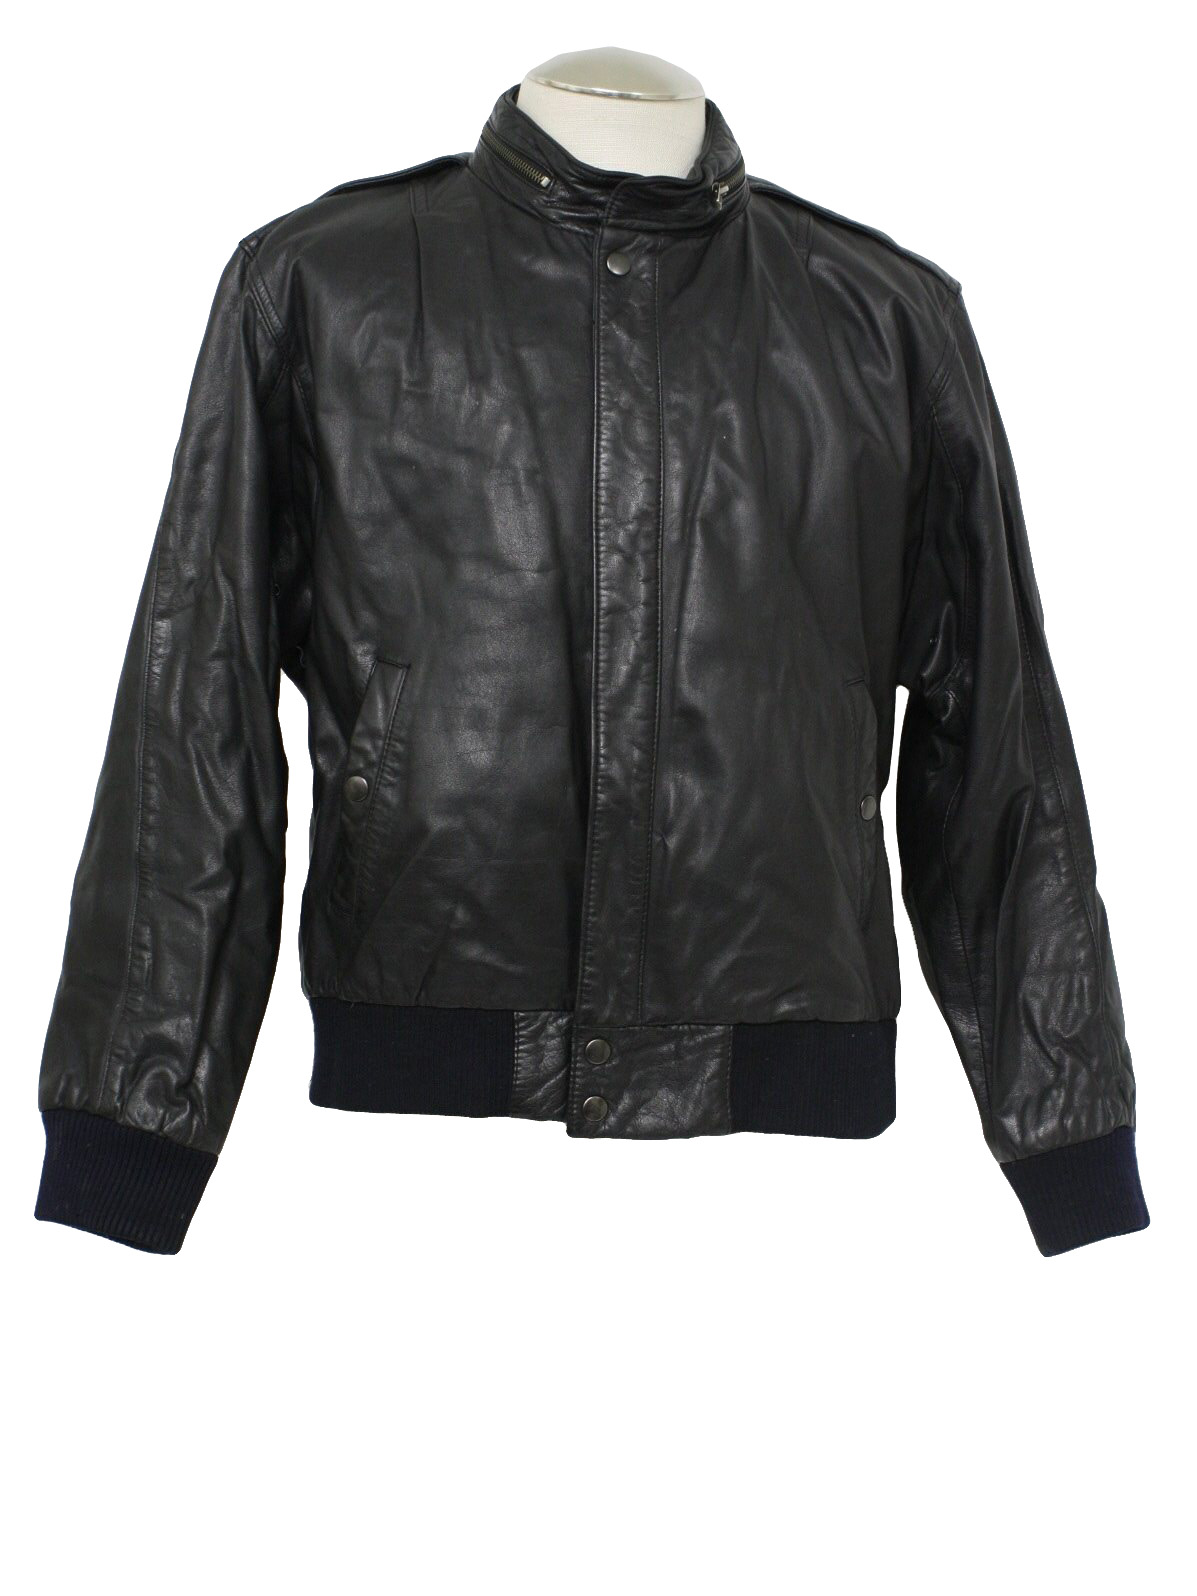 Worn out leather jacket